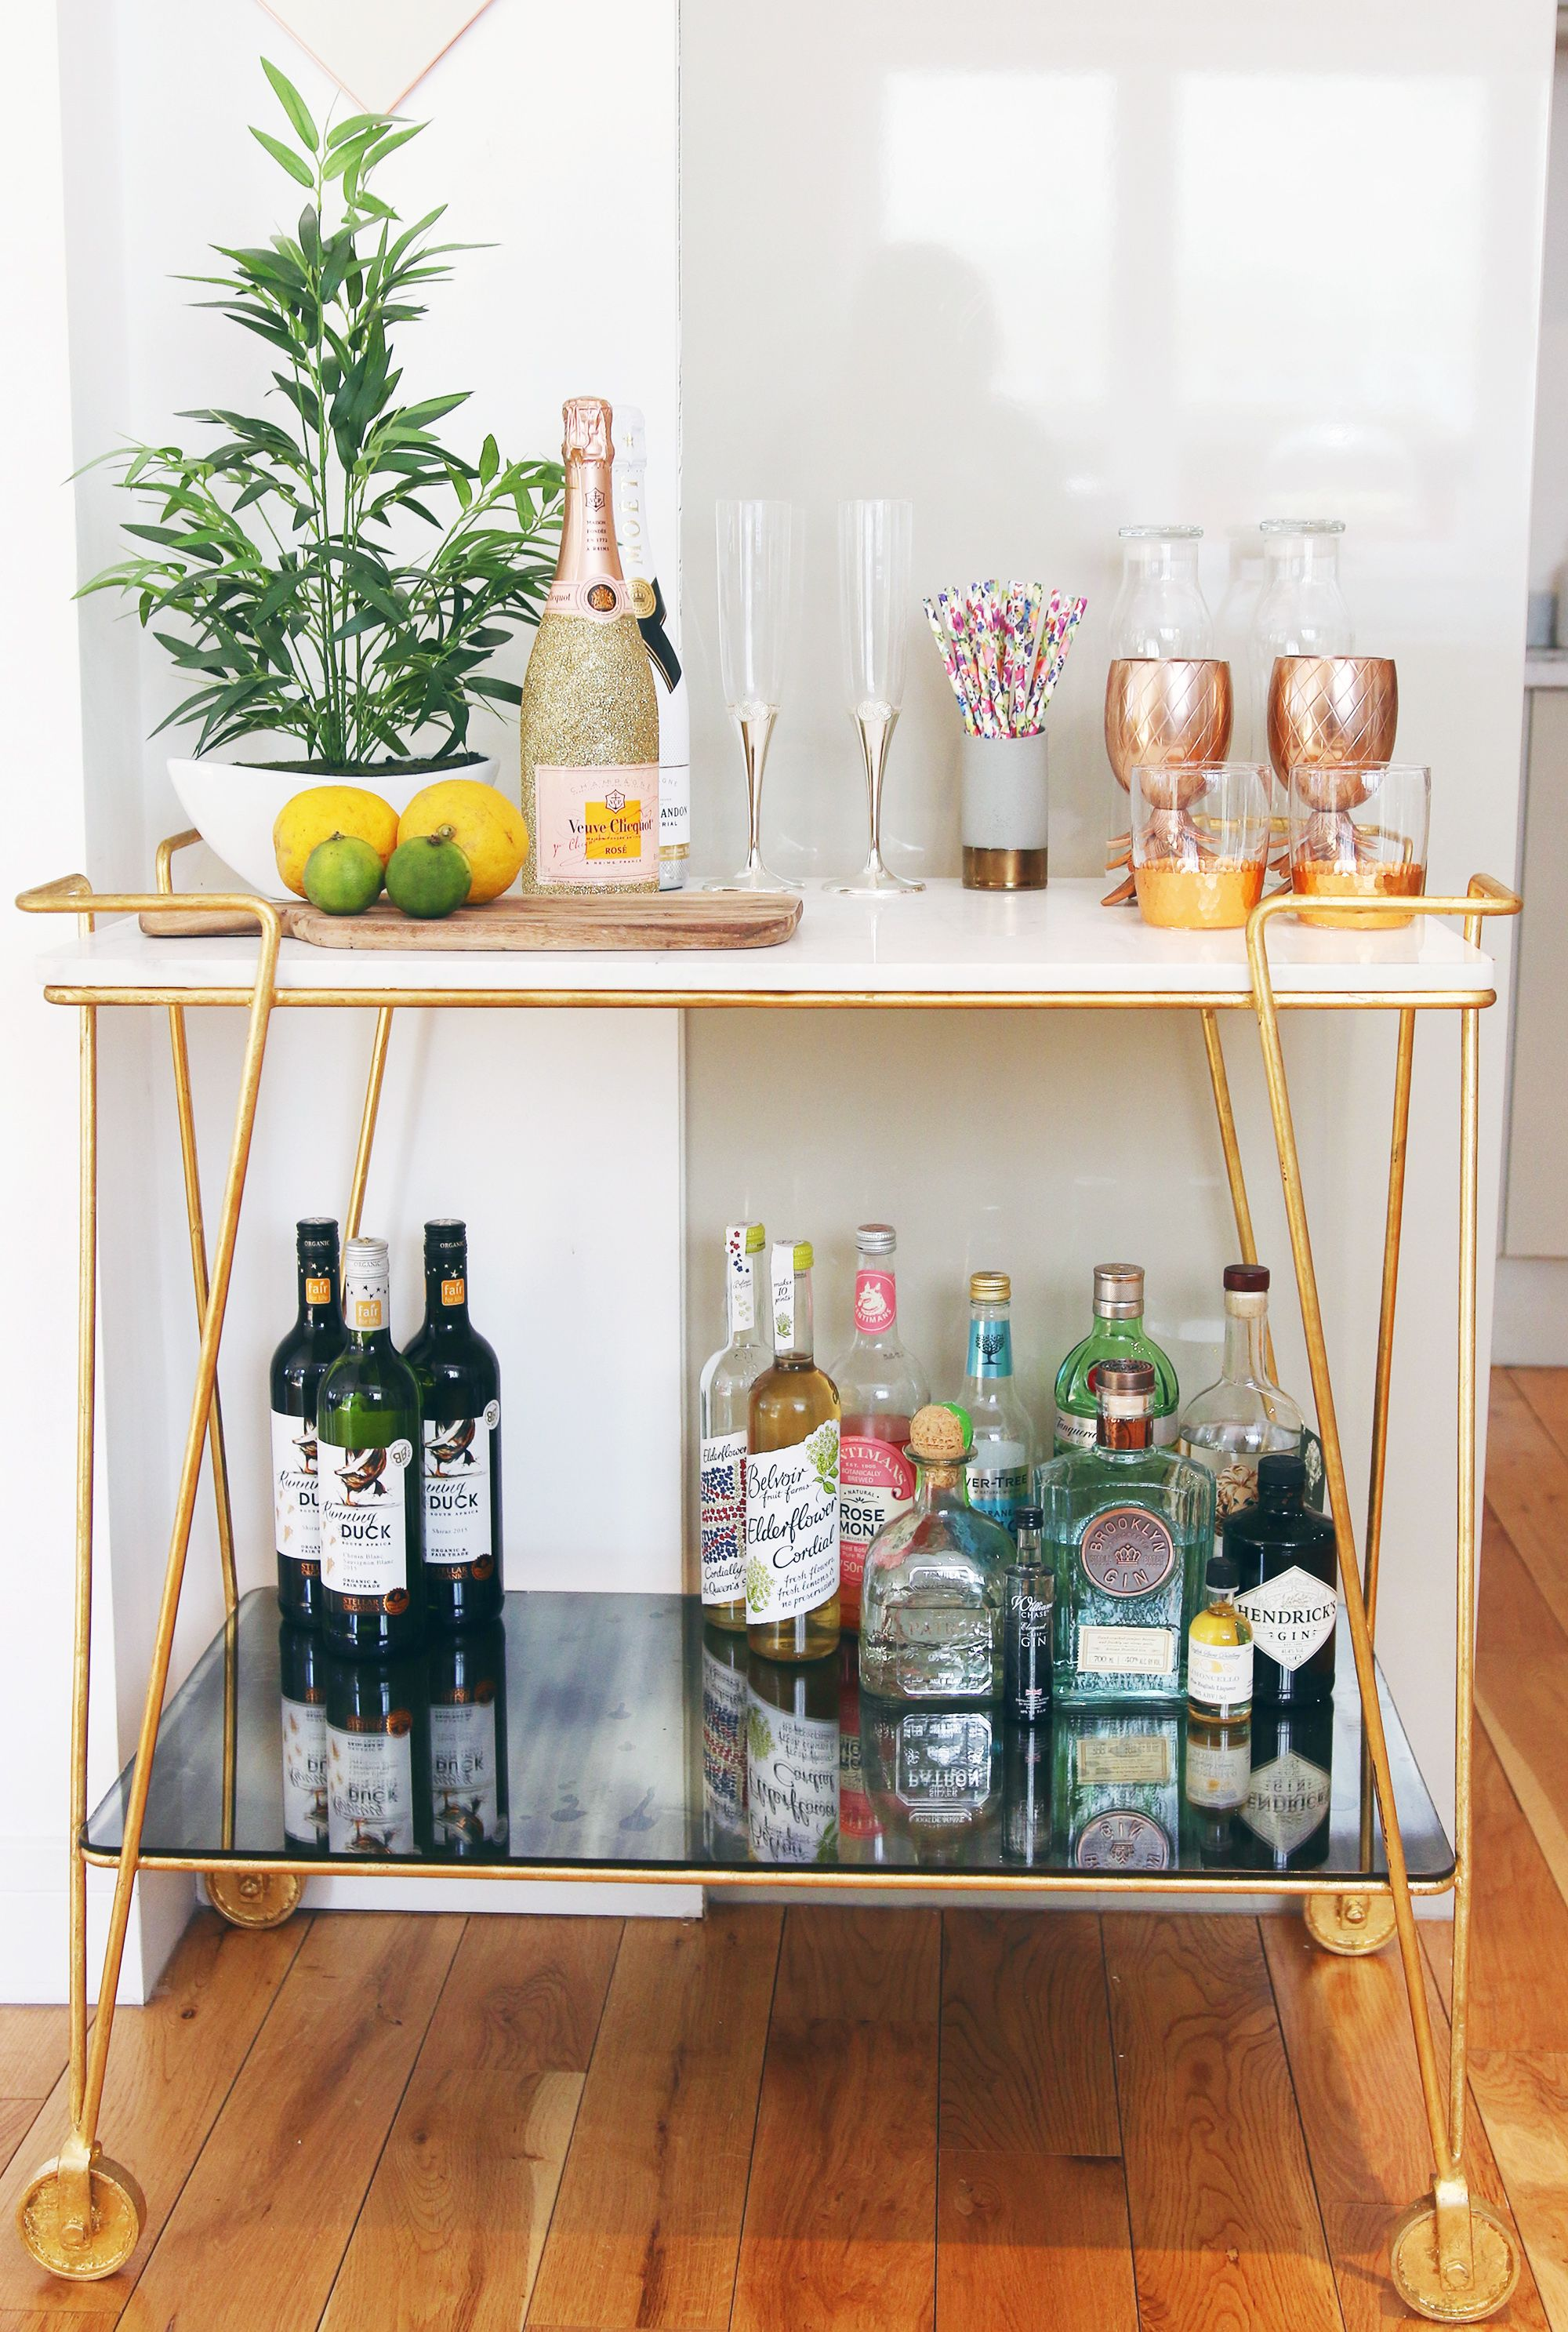 10 Bar Carts for Small Spaces That Will Change Your Decor Forever_110 Bar Carts for Small Spaces That Will Change Your Decor Forever_1